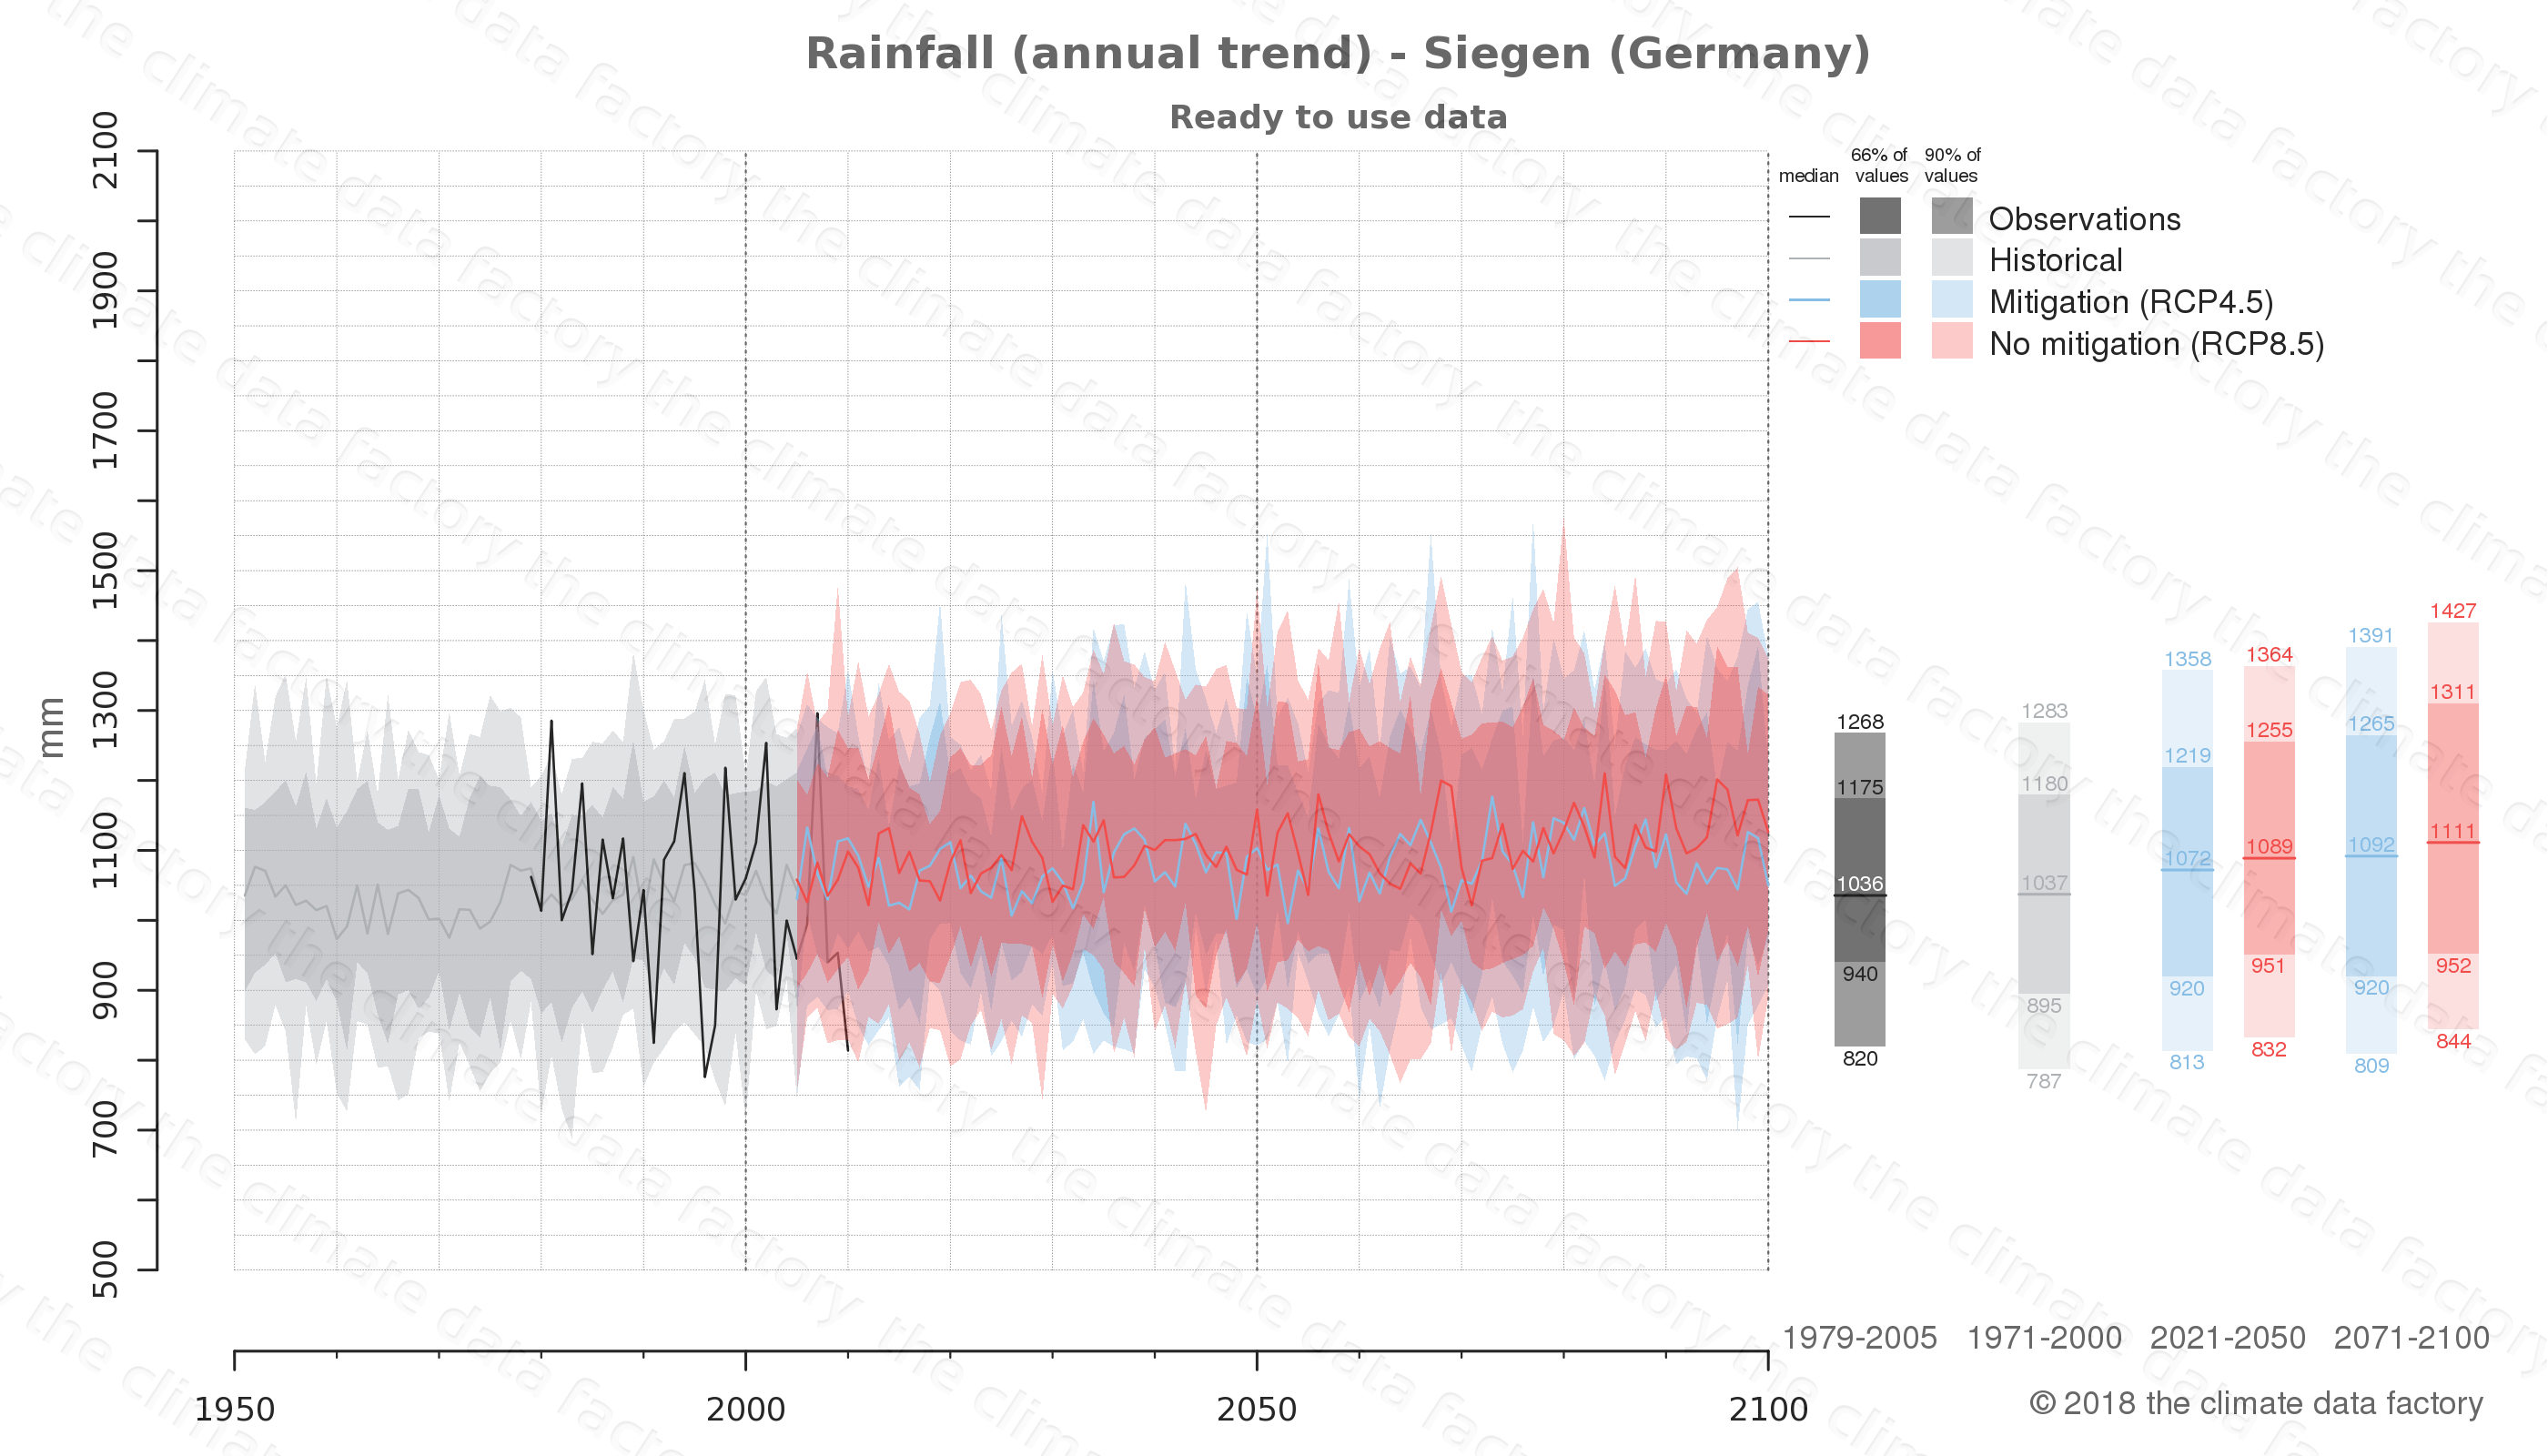 climate change data policy adaptation climate graph city data rainfall siegen germany